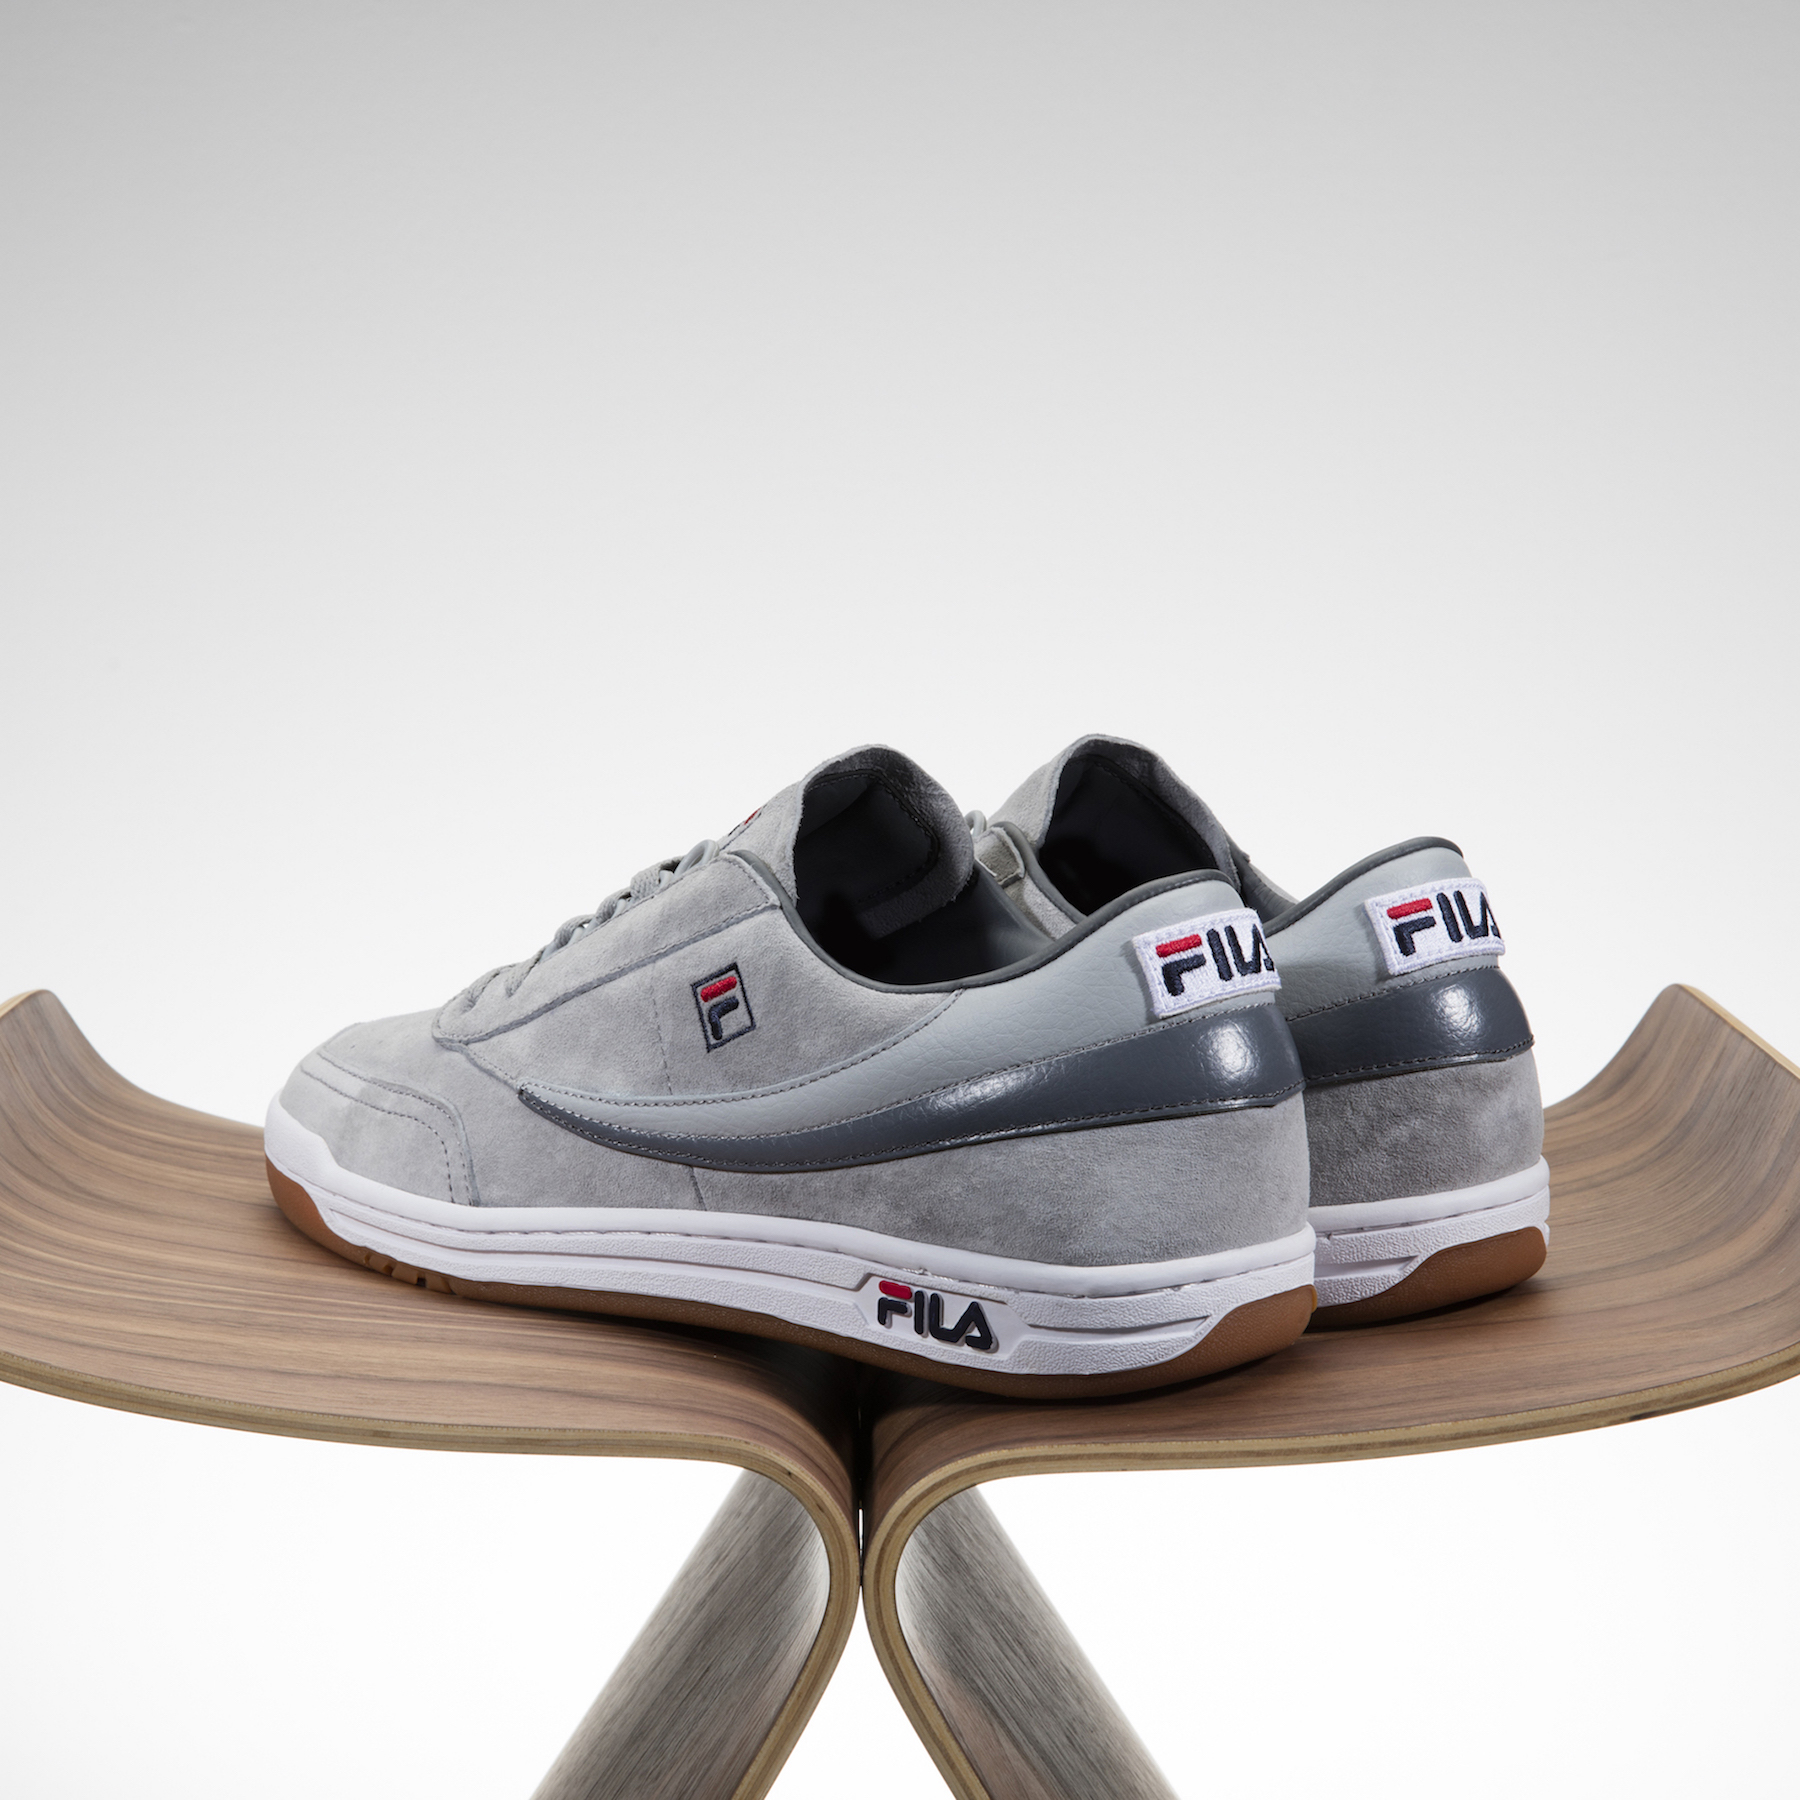 fila original tennis concrete gum pack 4